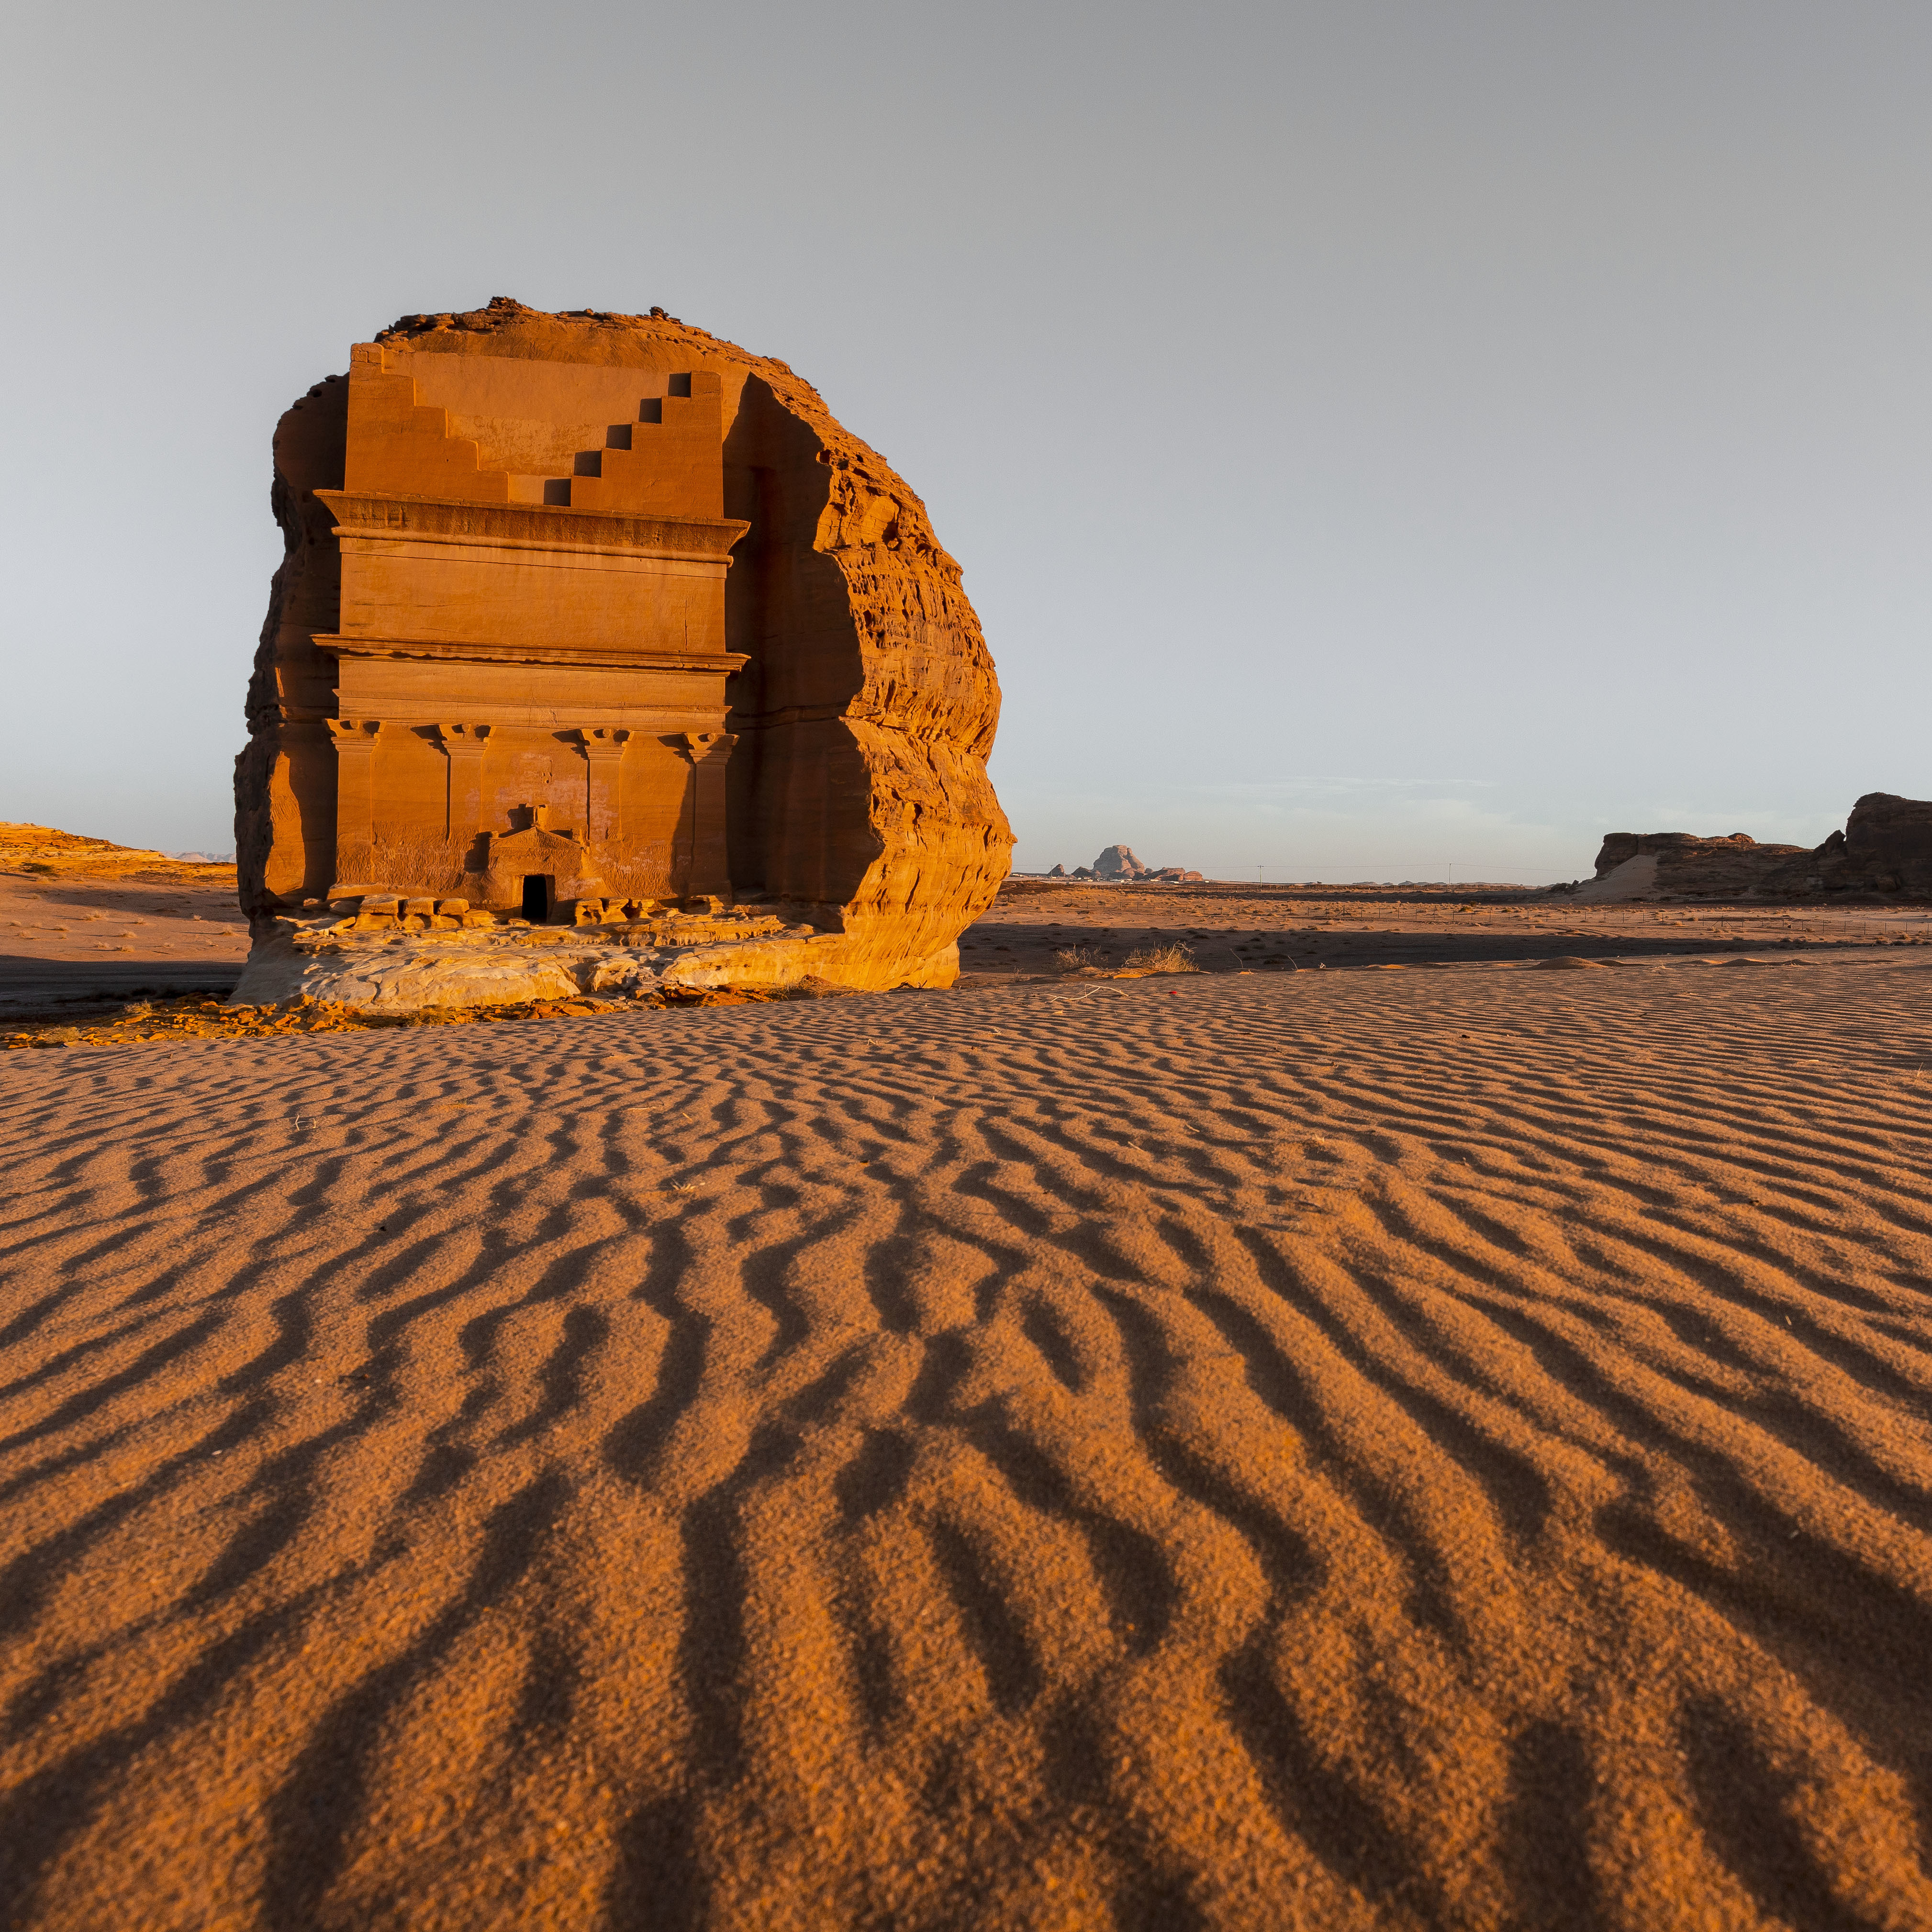 Qasr al-Farid at the UNESCO World Heritage Site Hegra in Saudi Arabia. Courtesy of the Royal Commission for AlUla.